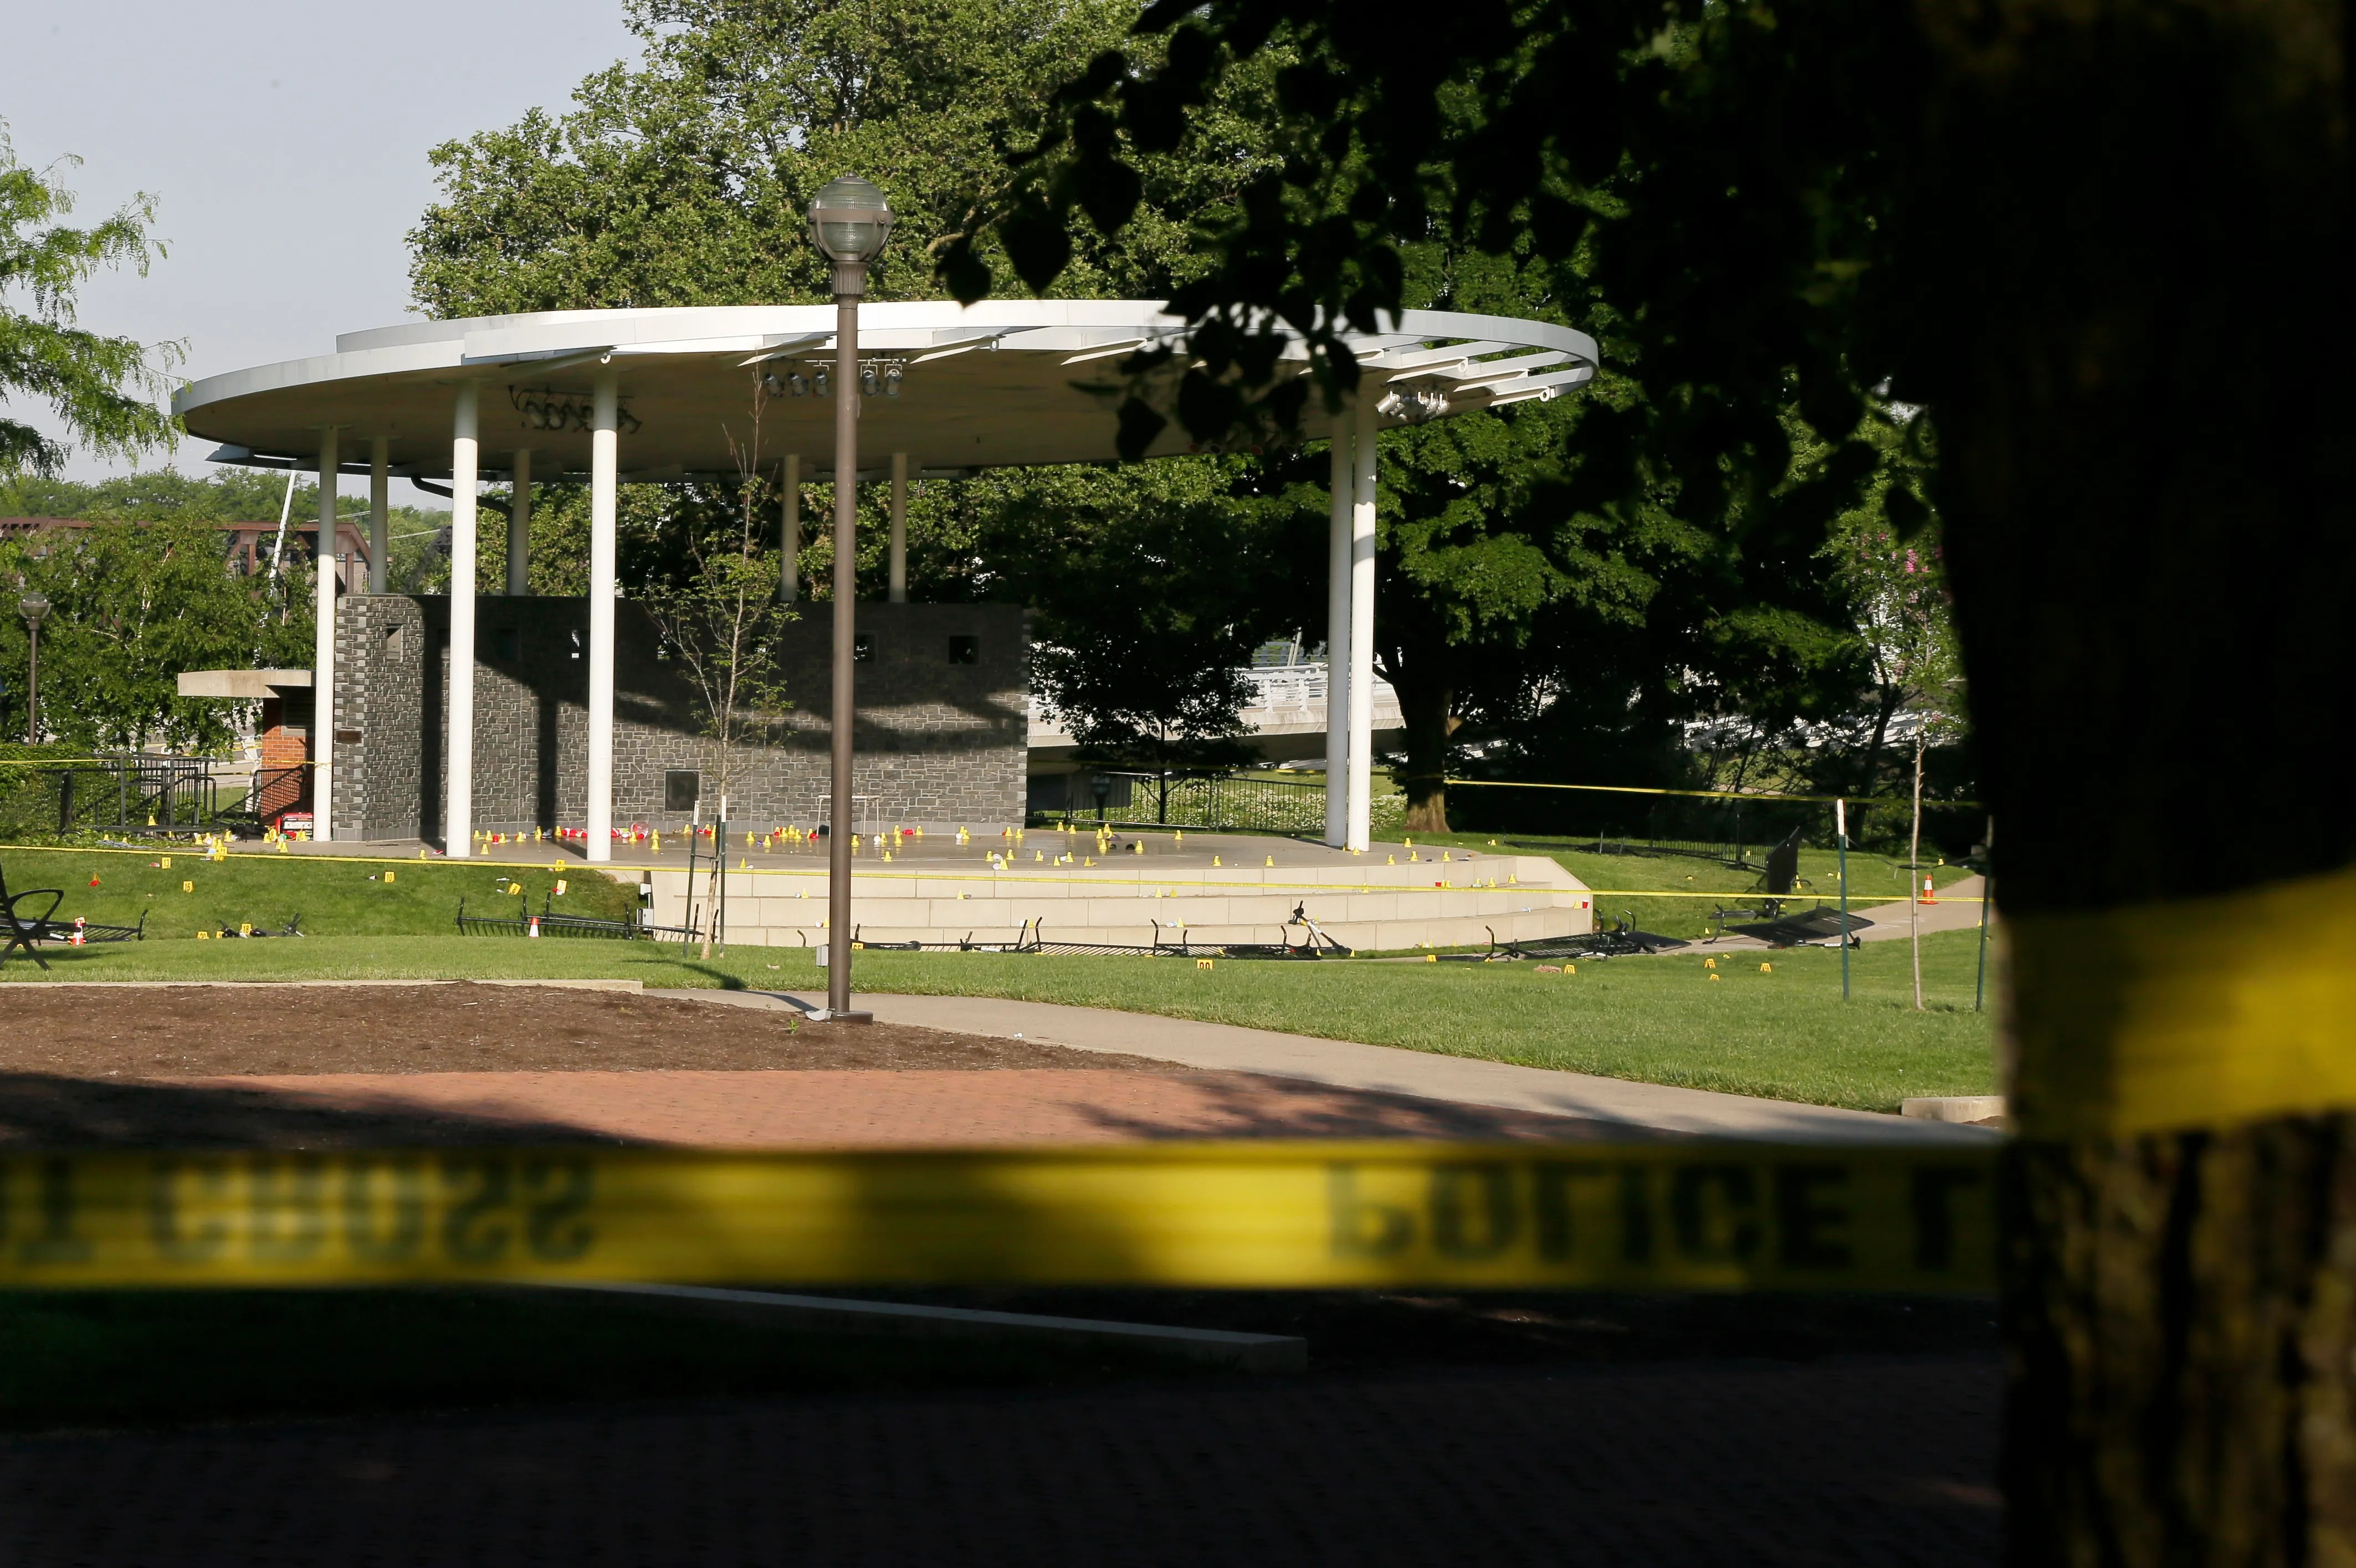 Crime scene tape surrounds Bicentennial Park in downtown Columbus on Sunday morning, May 23, 2021, as Columbus police investigate a shooting late Saturday night that killed one and injured several others. The small yellow cones all over the stage and surrounding grass areas mark bullet casings and other evidence.